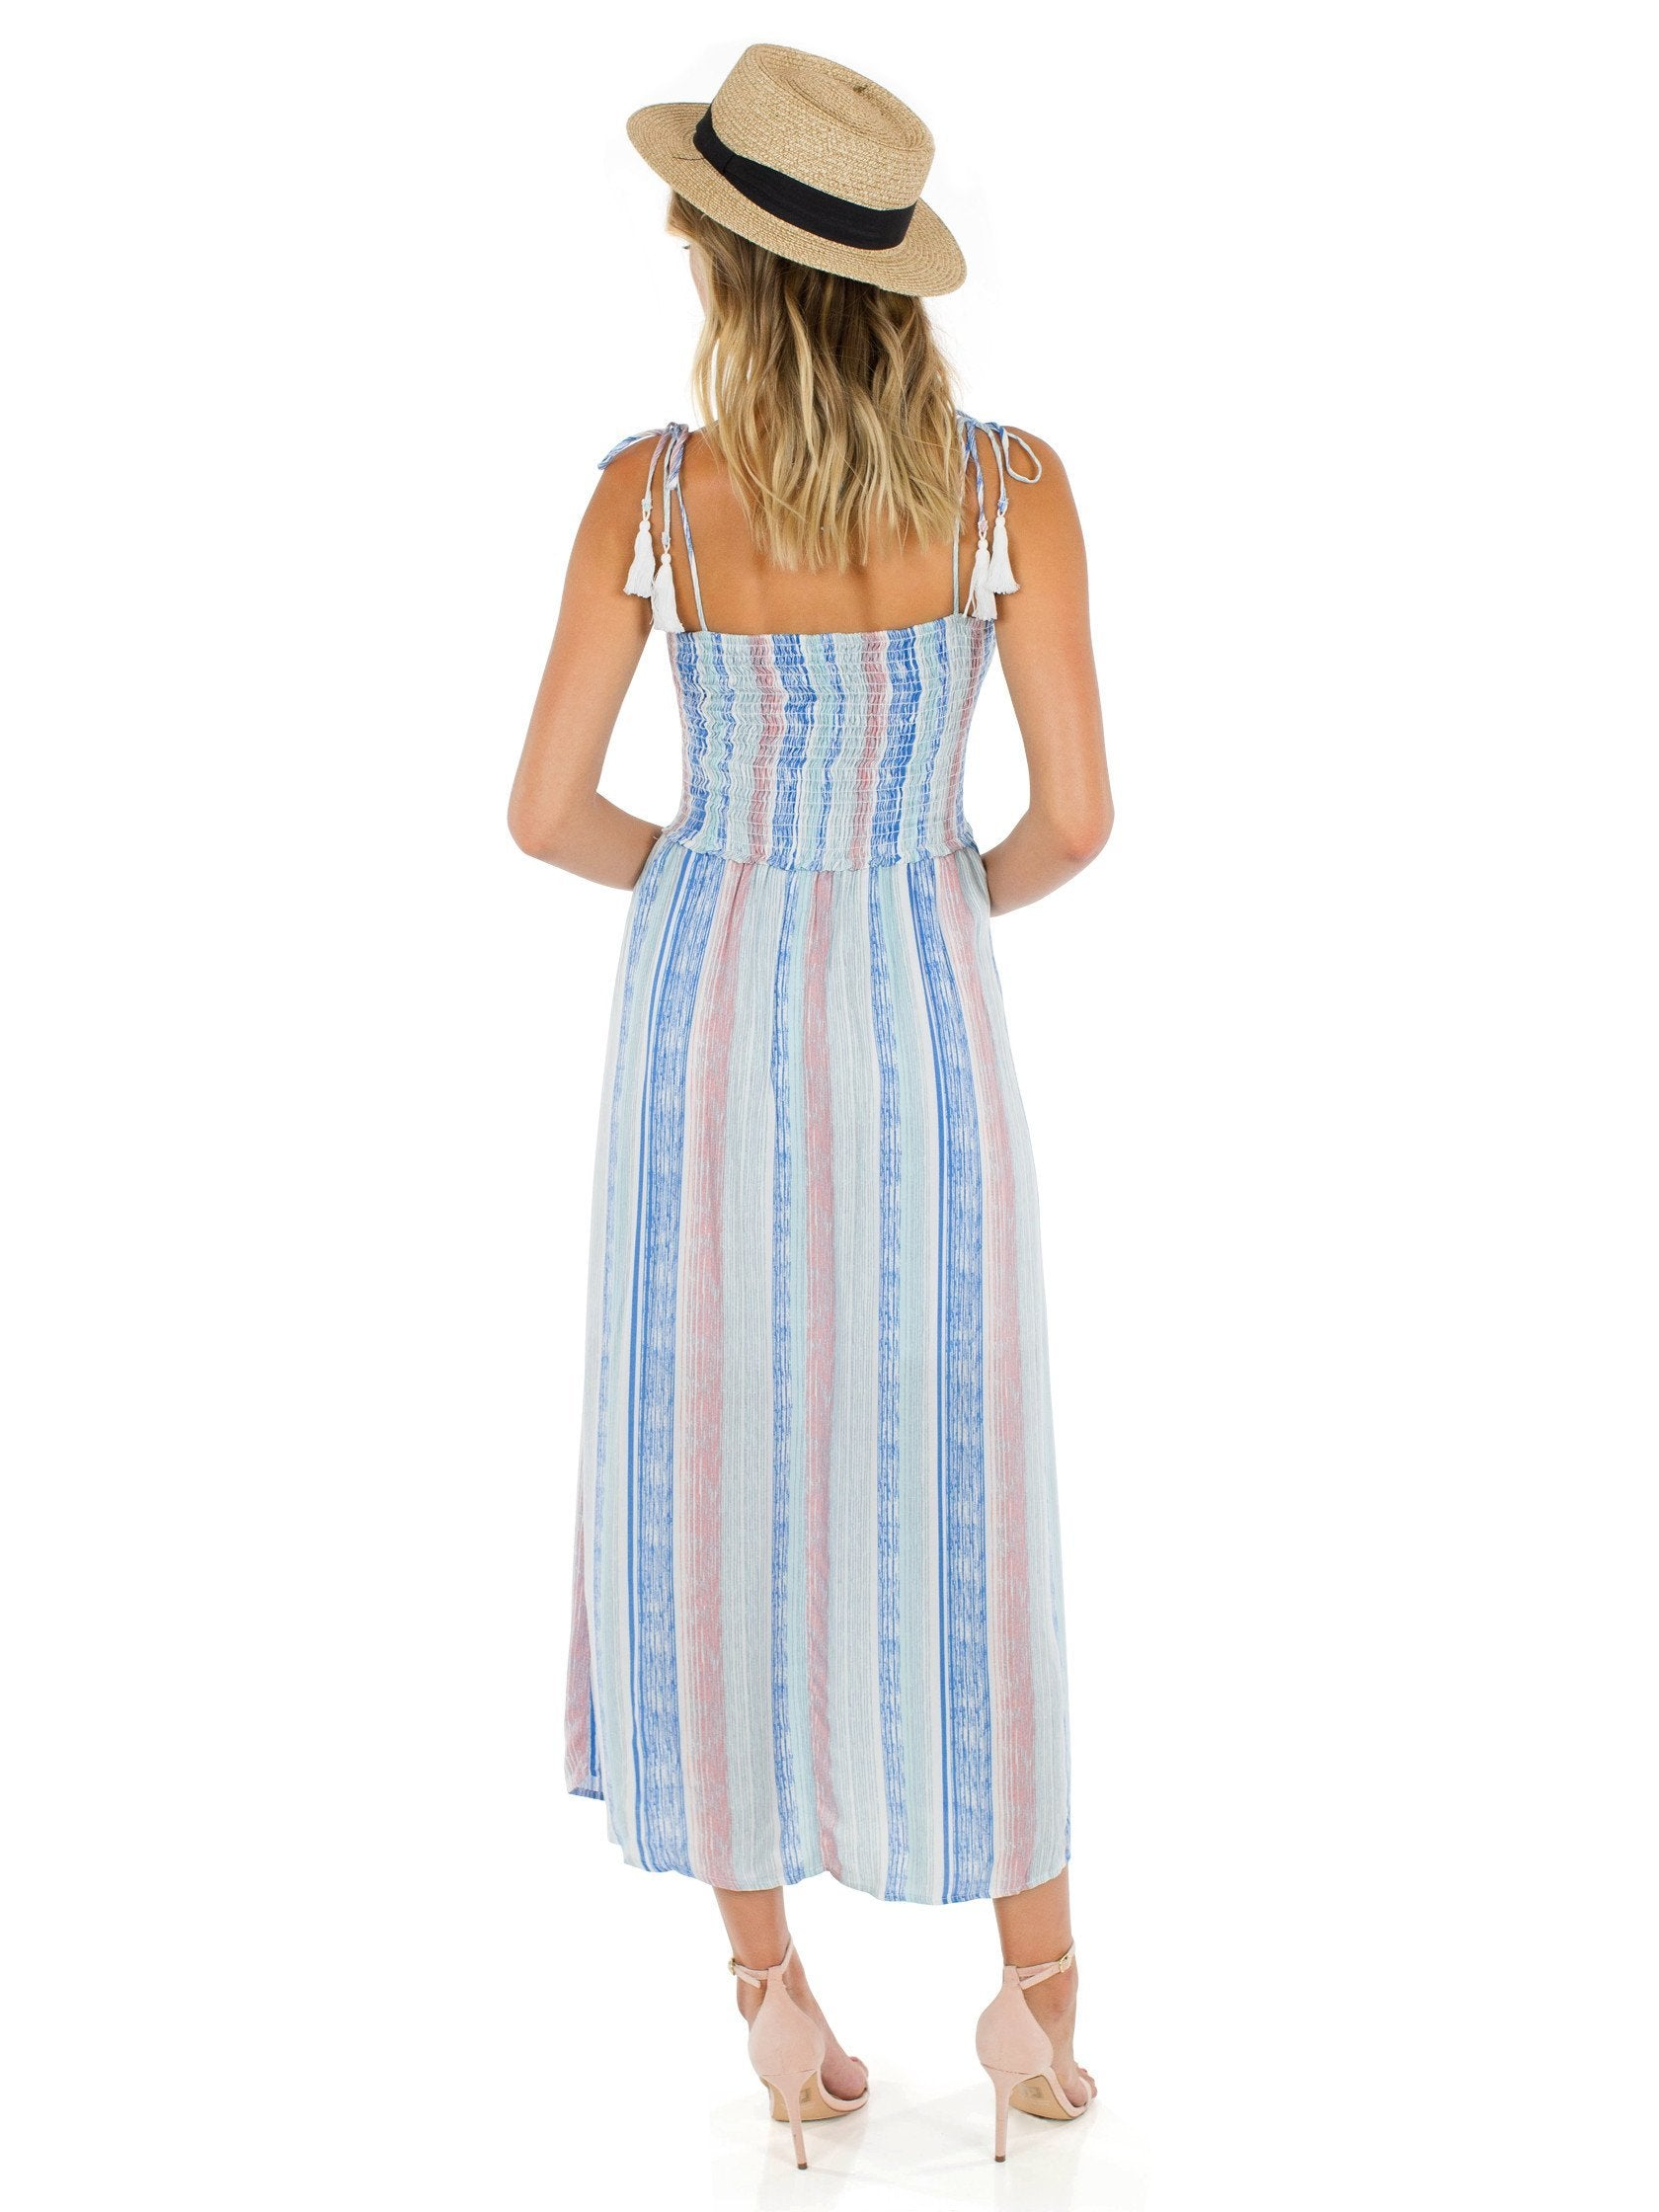 Women wearing a dress rental from Lush called Off Into The Sunset Dress